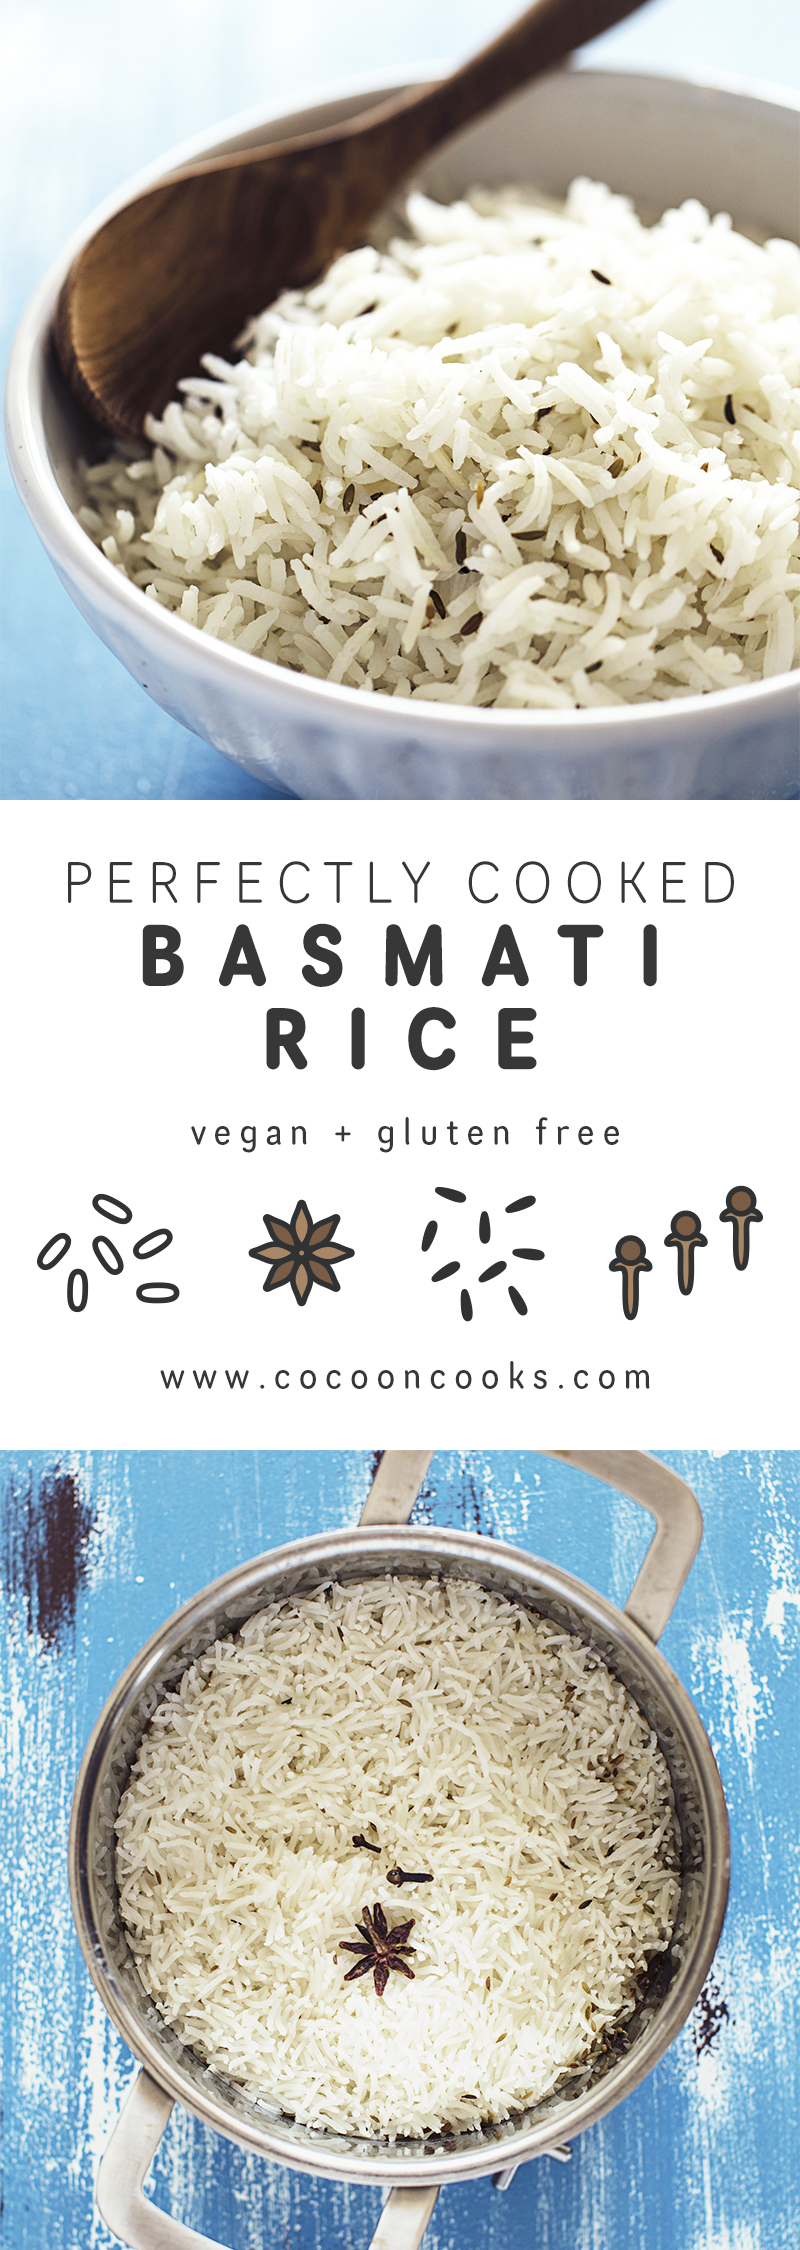 Learn how to cook the perfect Basmati Rice in just 15 minutes. This recipe is vegan and oil-free.